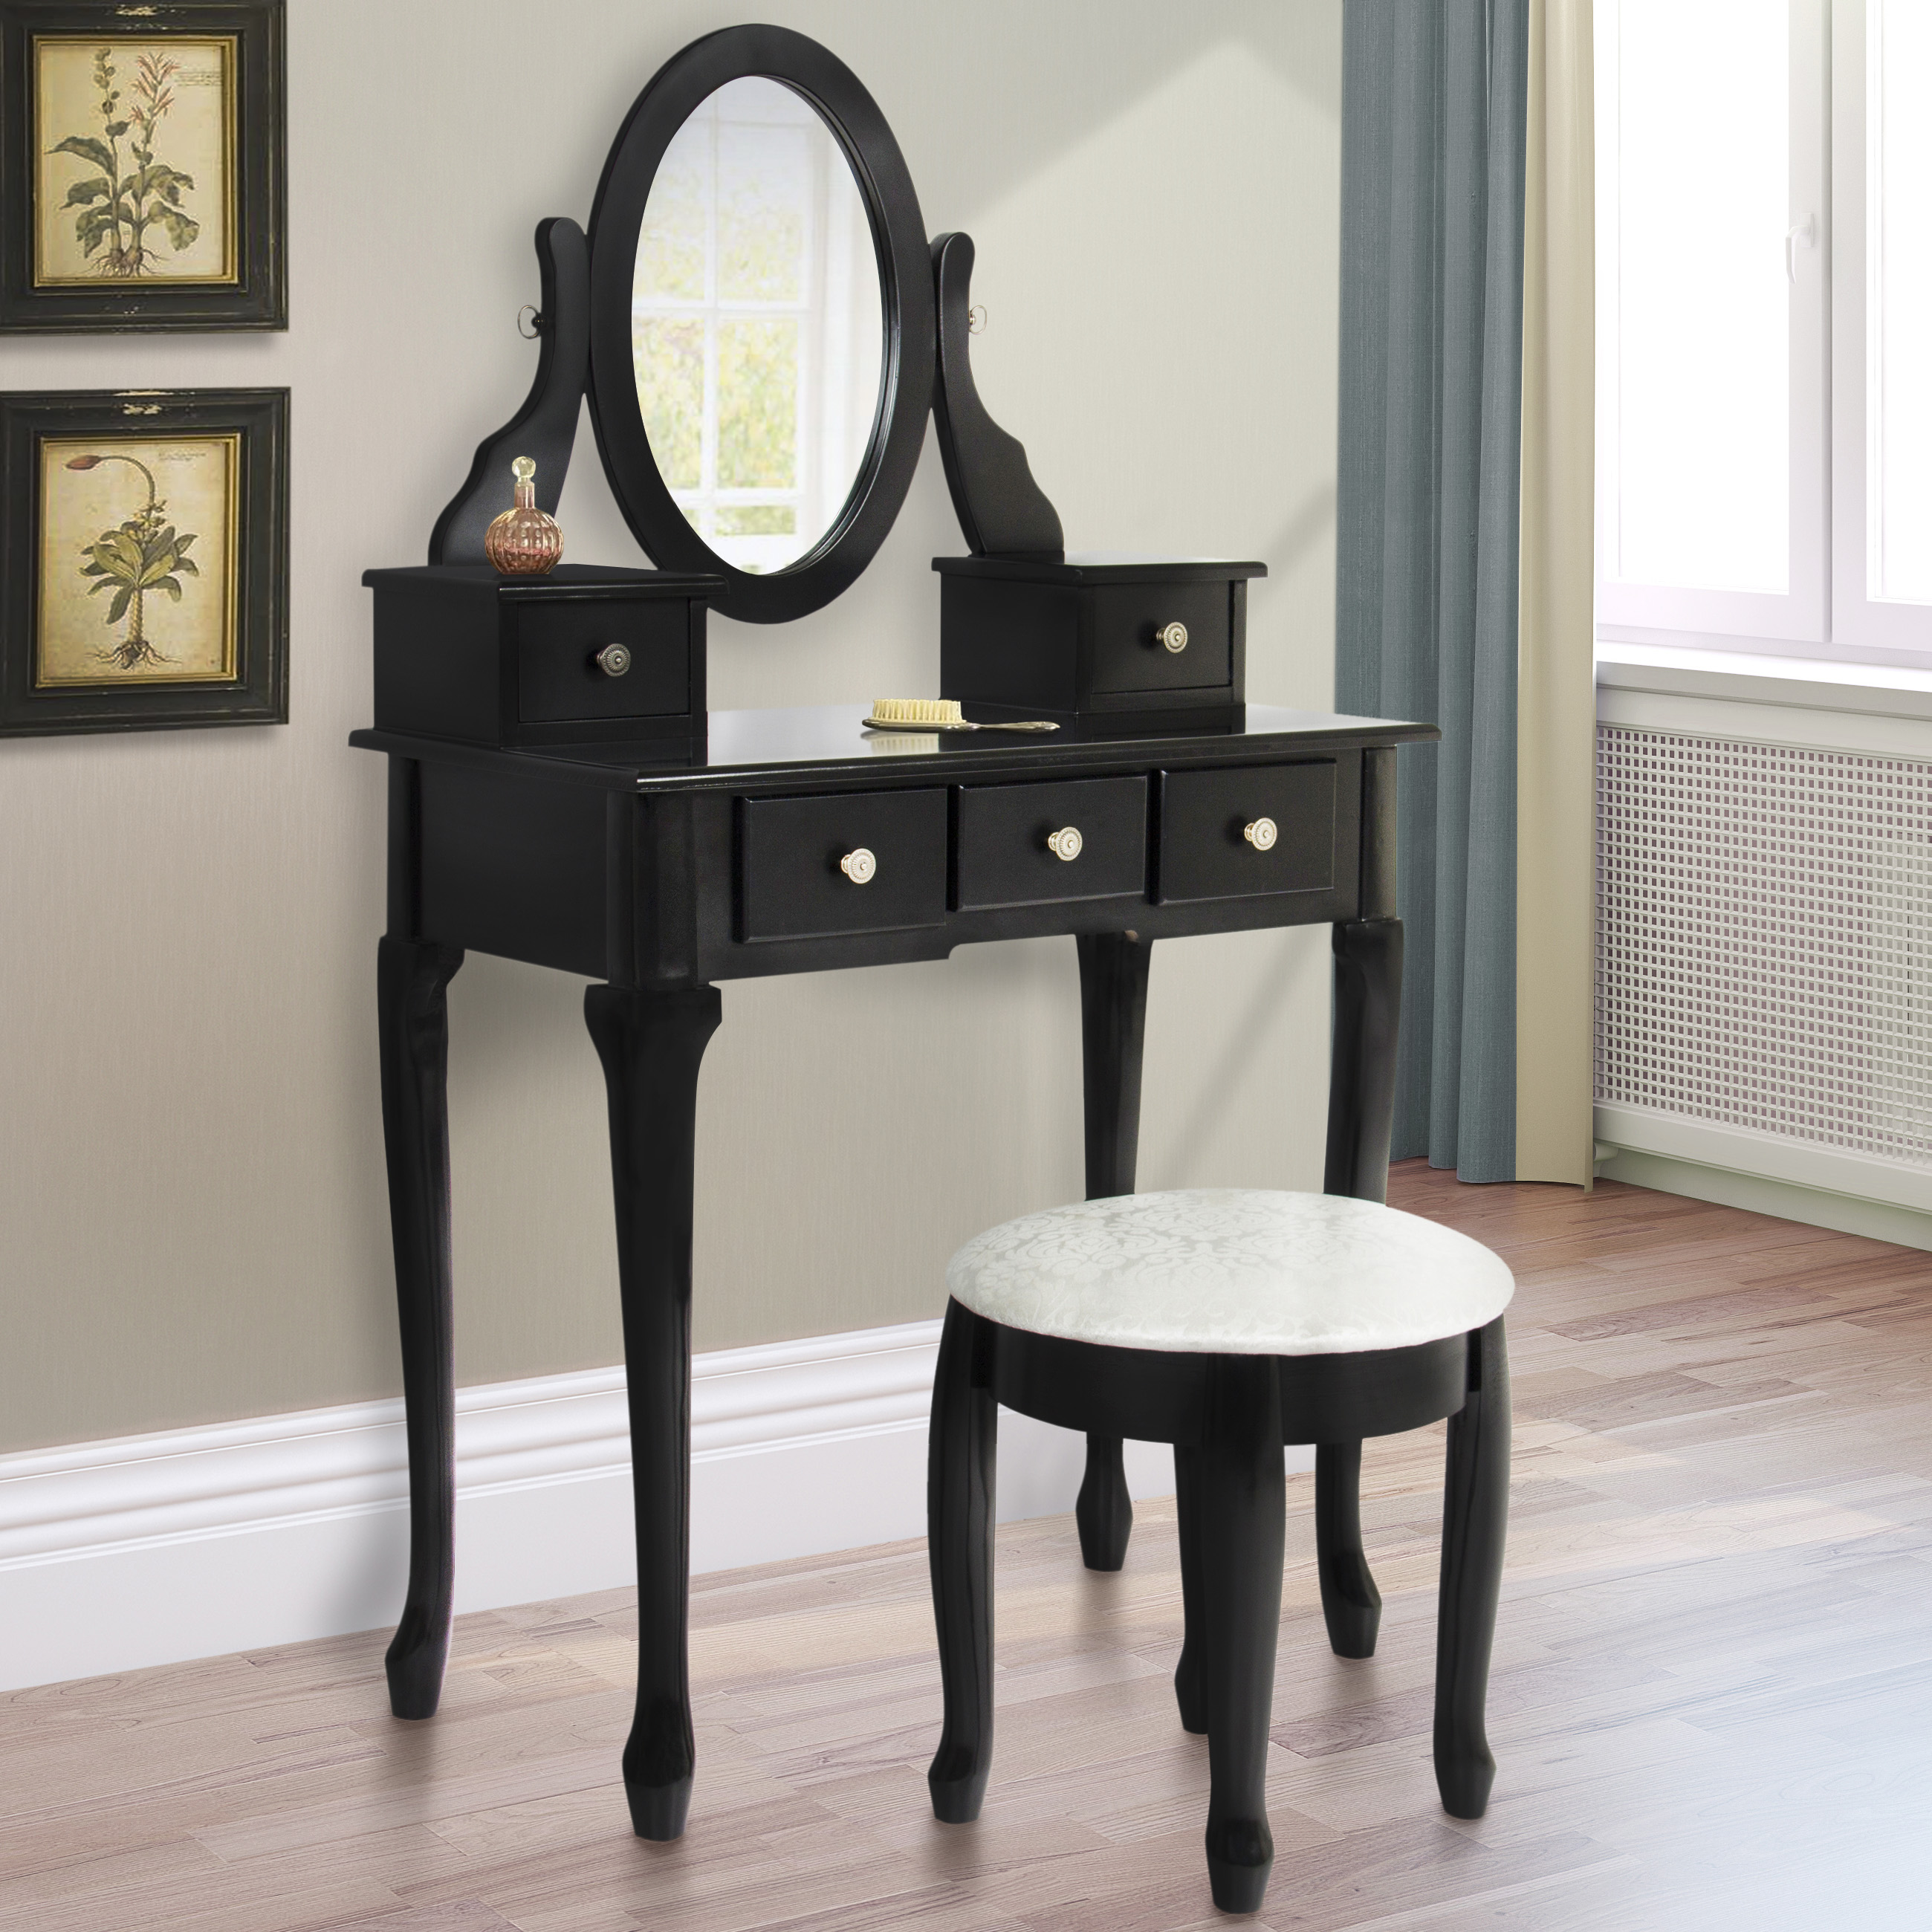 Home Styles Naples Vanity Table and Mirror, White - Walmart.com